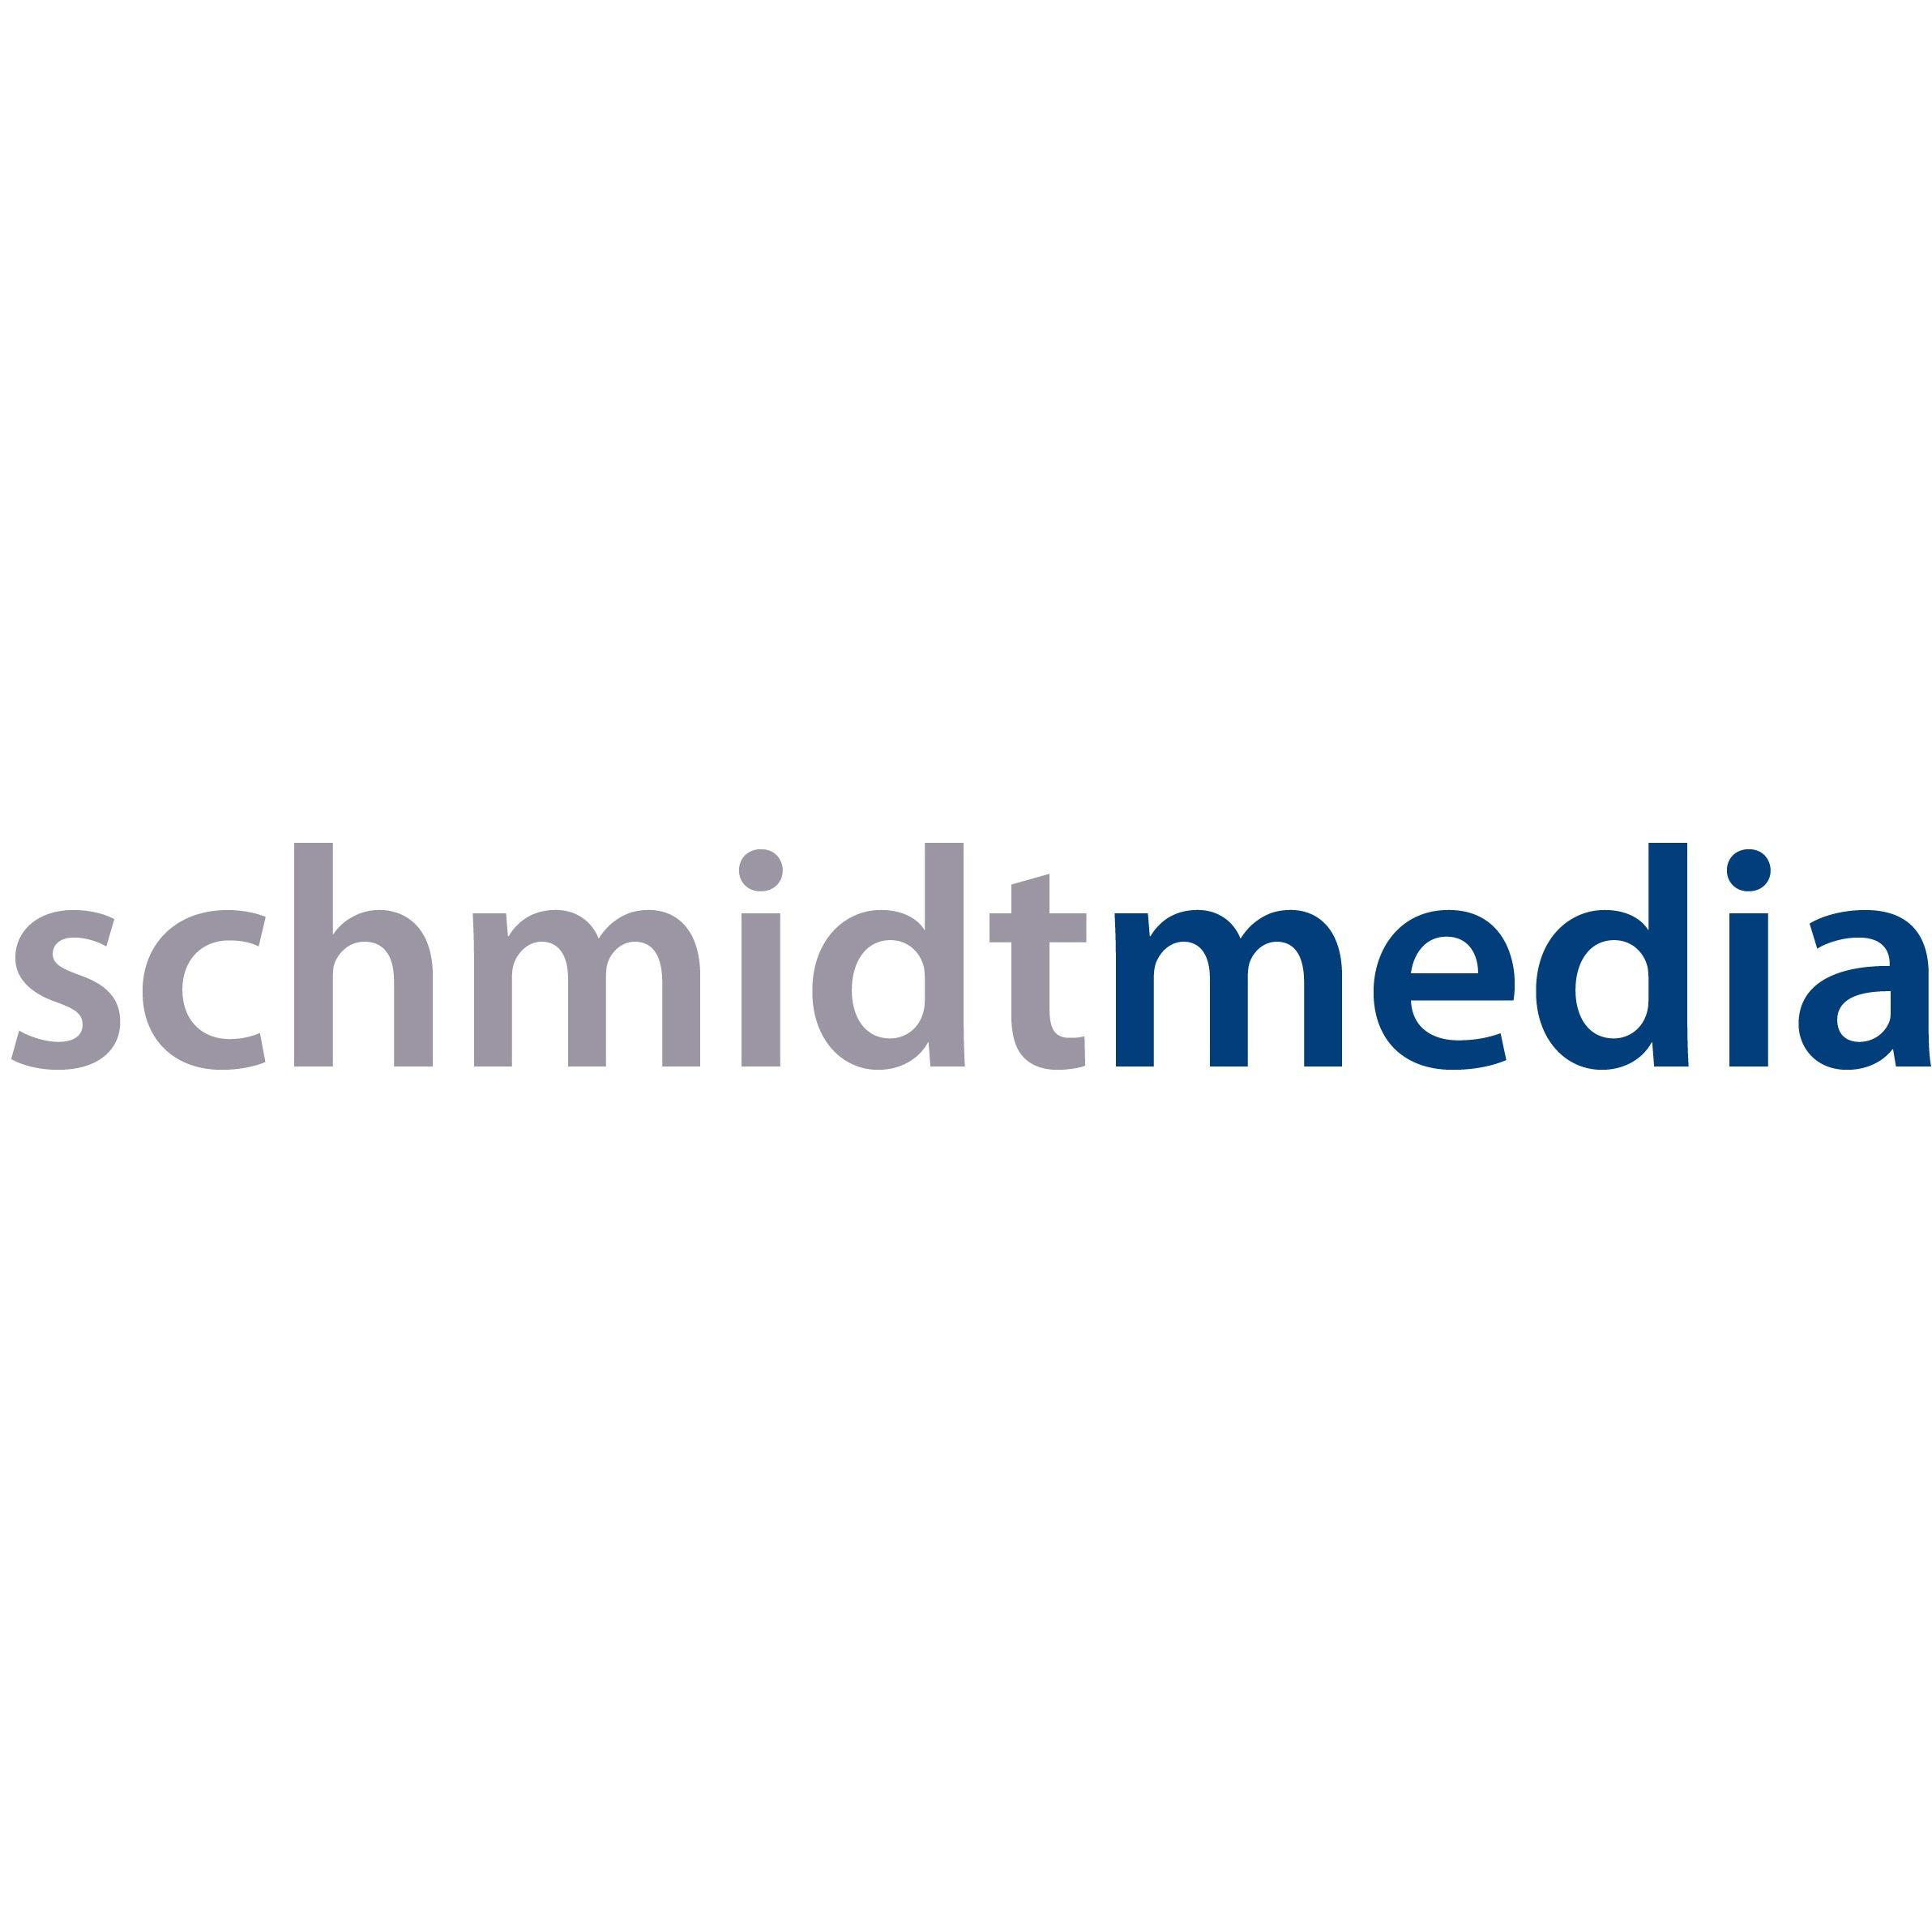 Bild zu schmidtmedia Webdesign & Social Media Marketing Agentur Köln in Köln